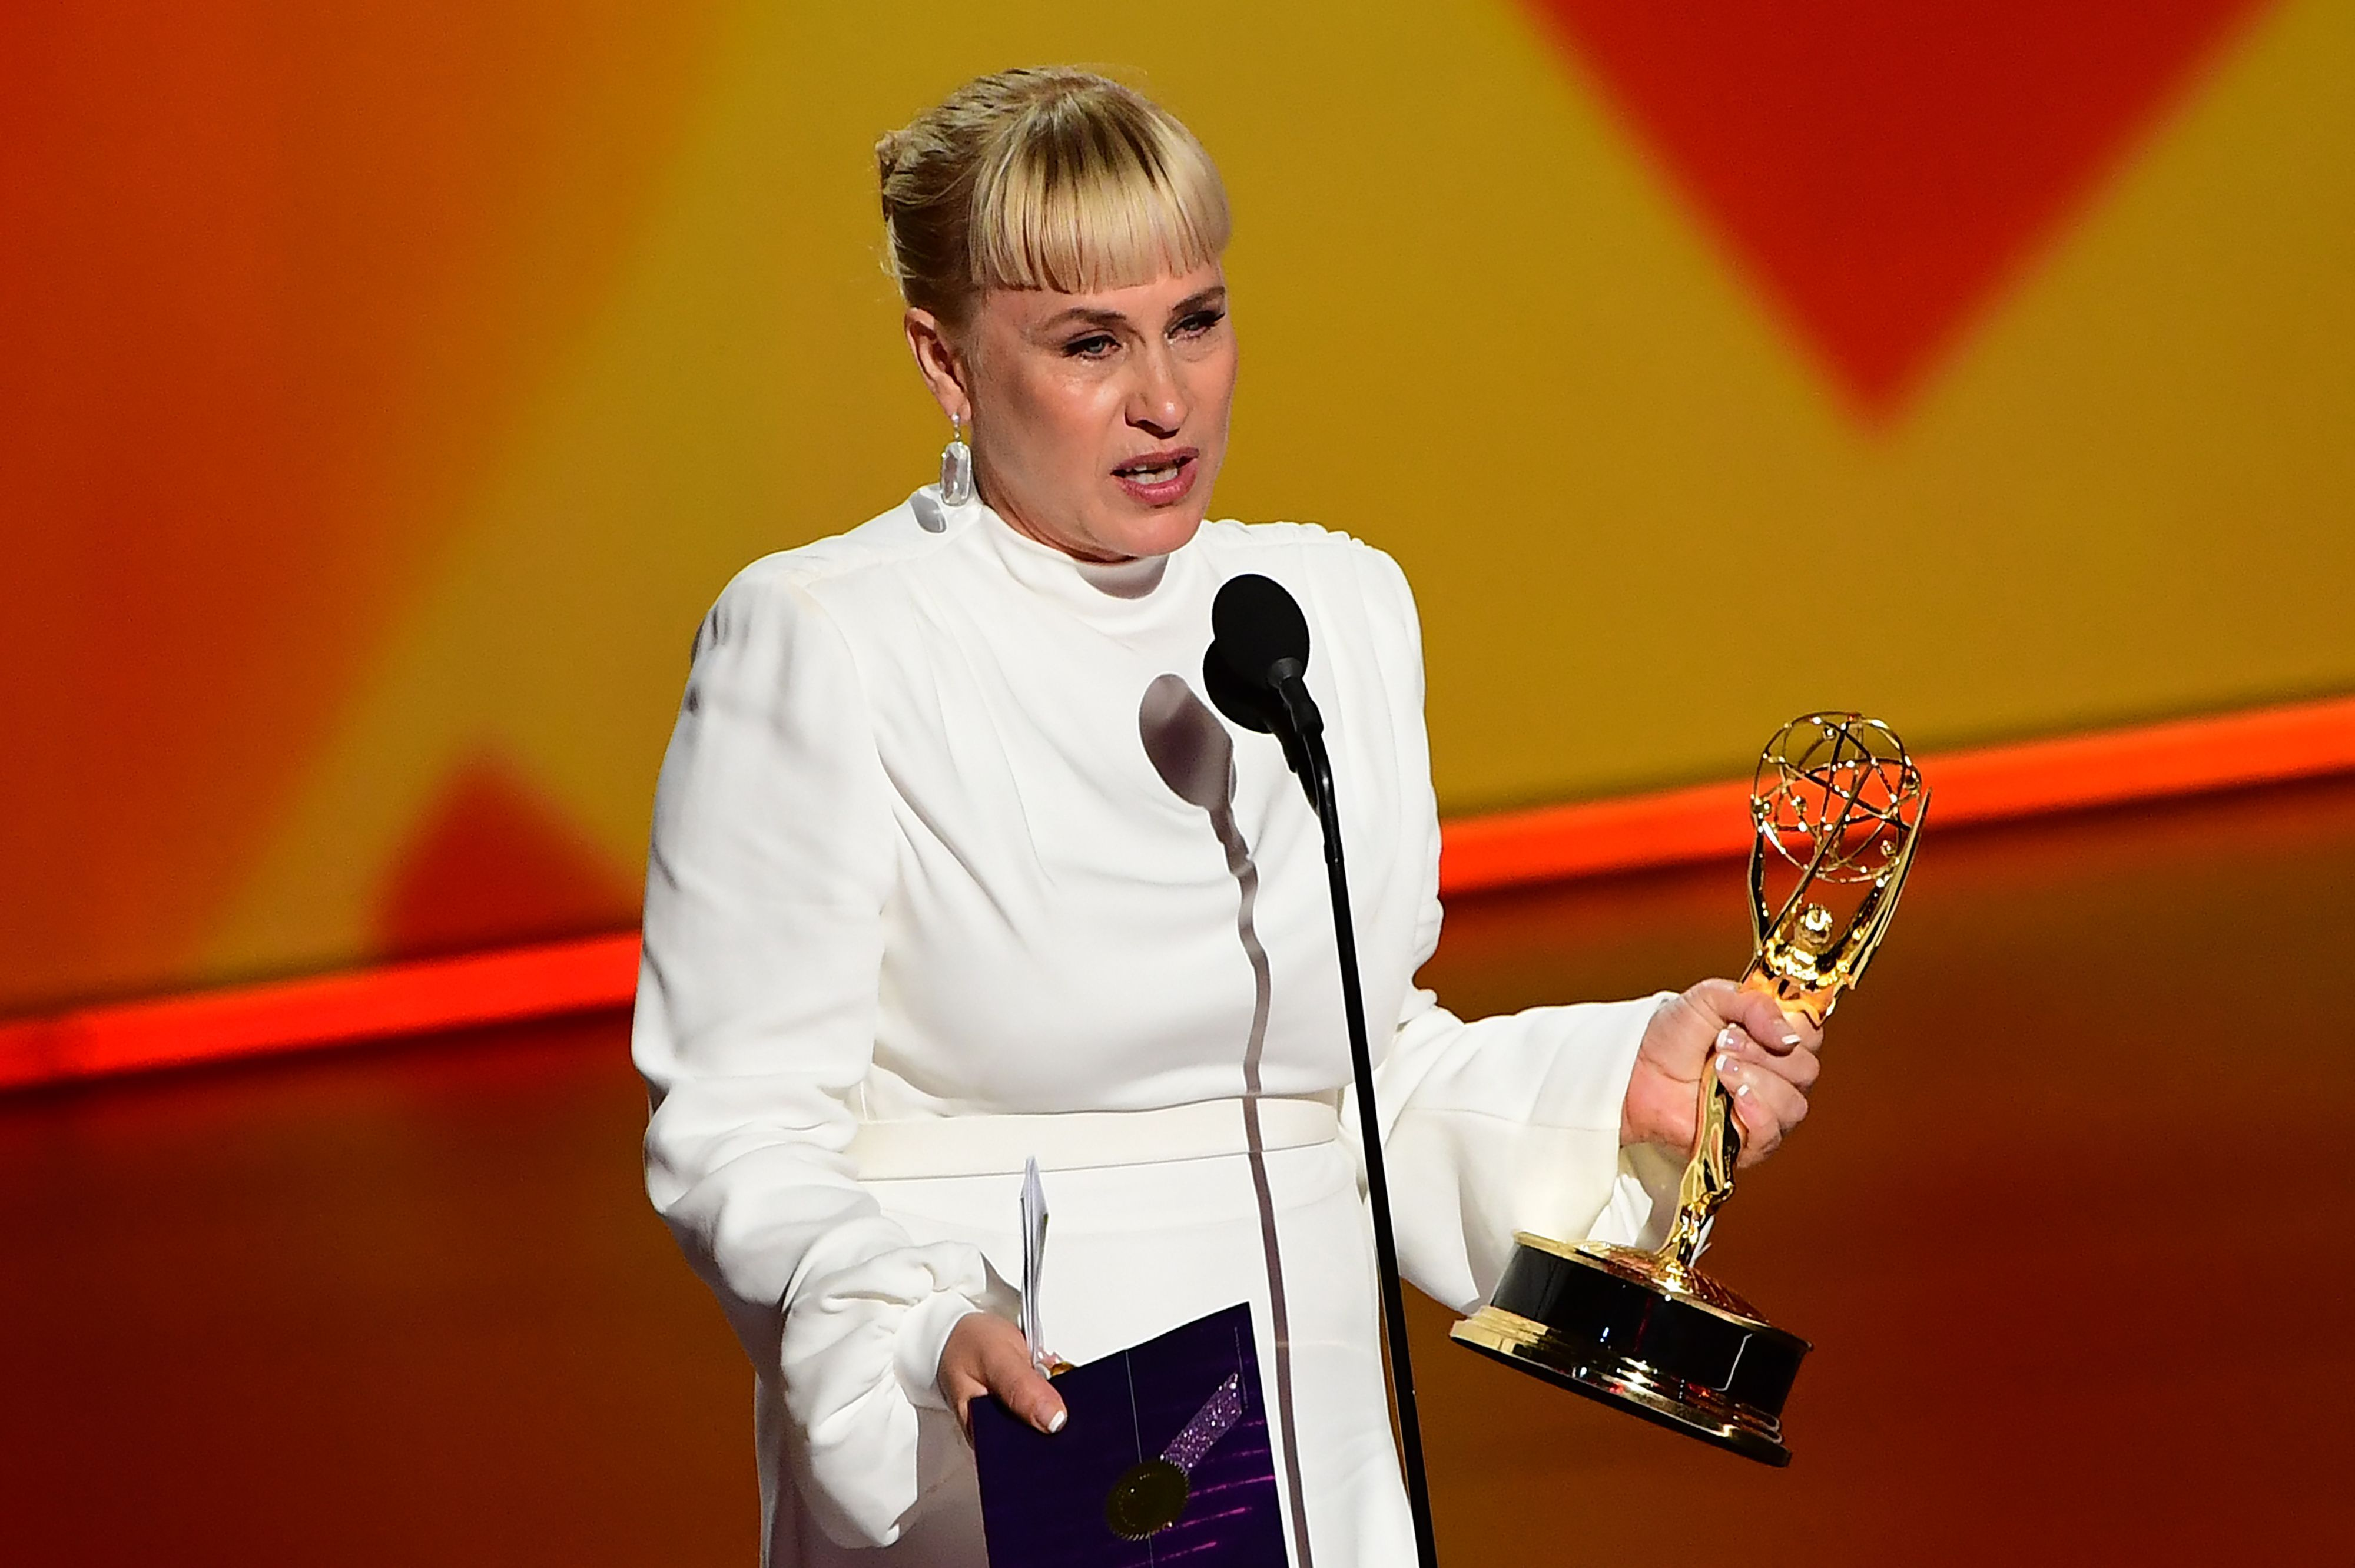 Patricia Arquette Just Opened Up About Her Sister's Death In Her Emmys Acceptance Speech